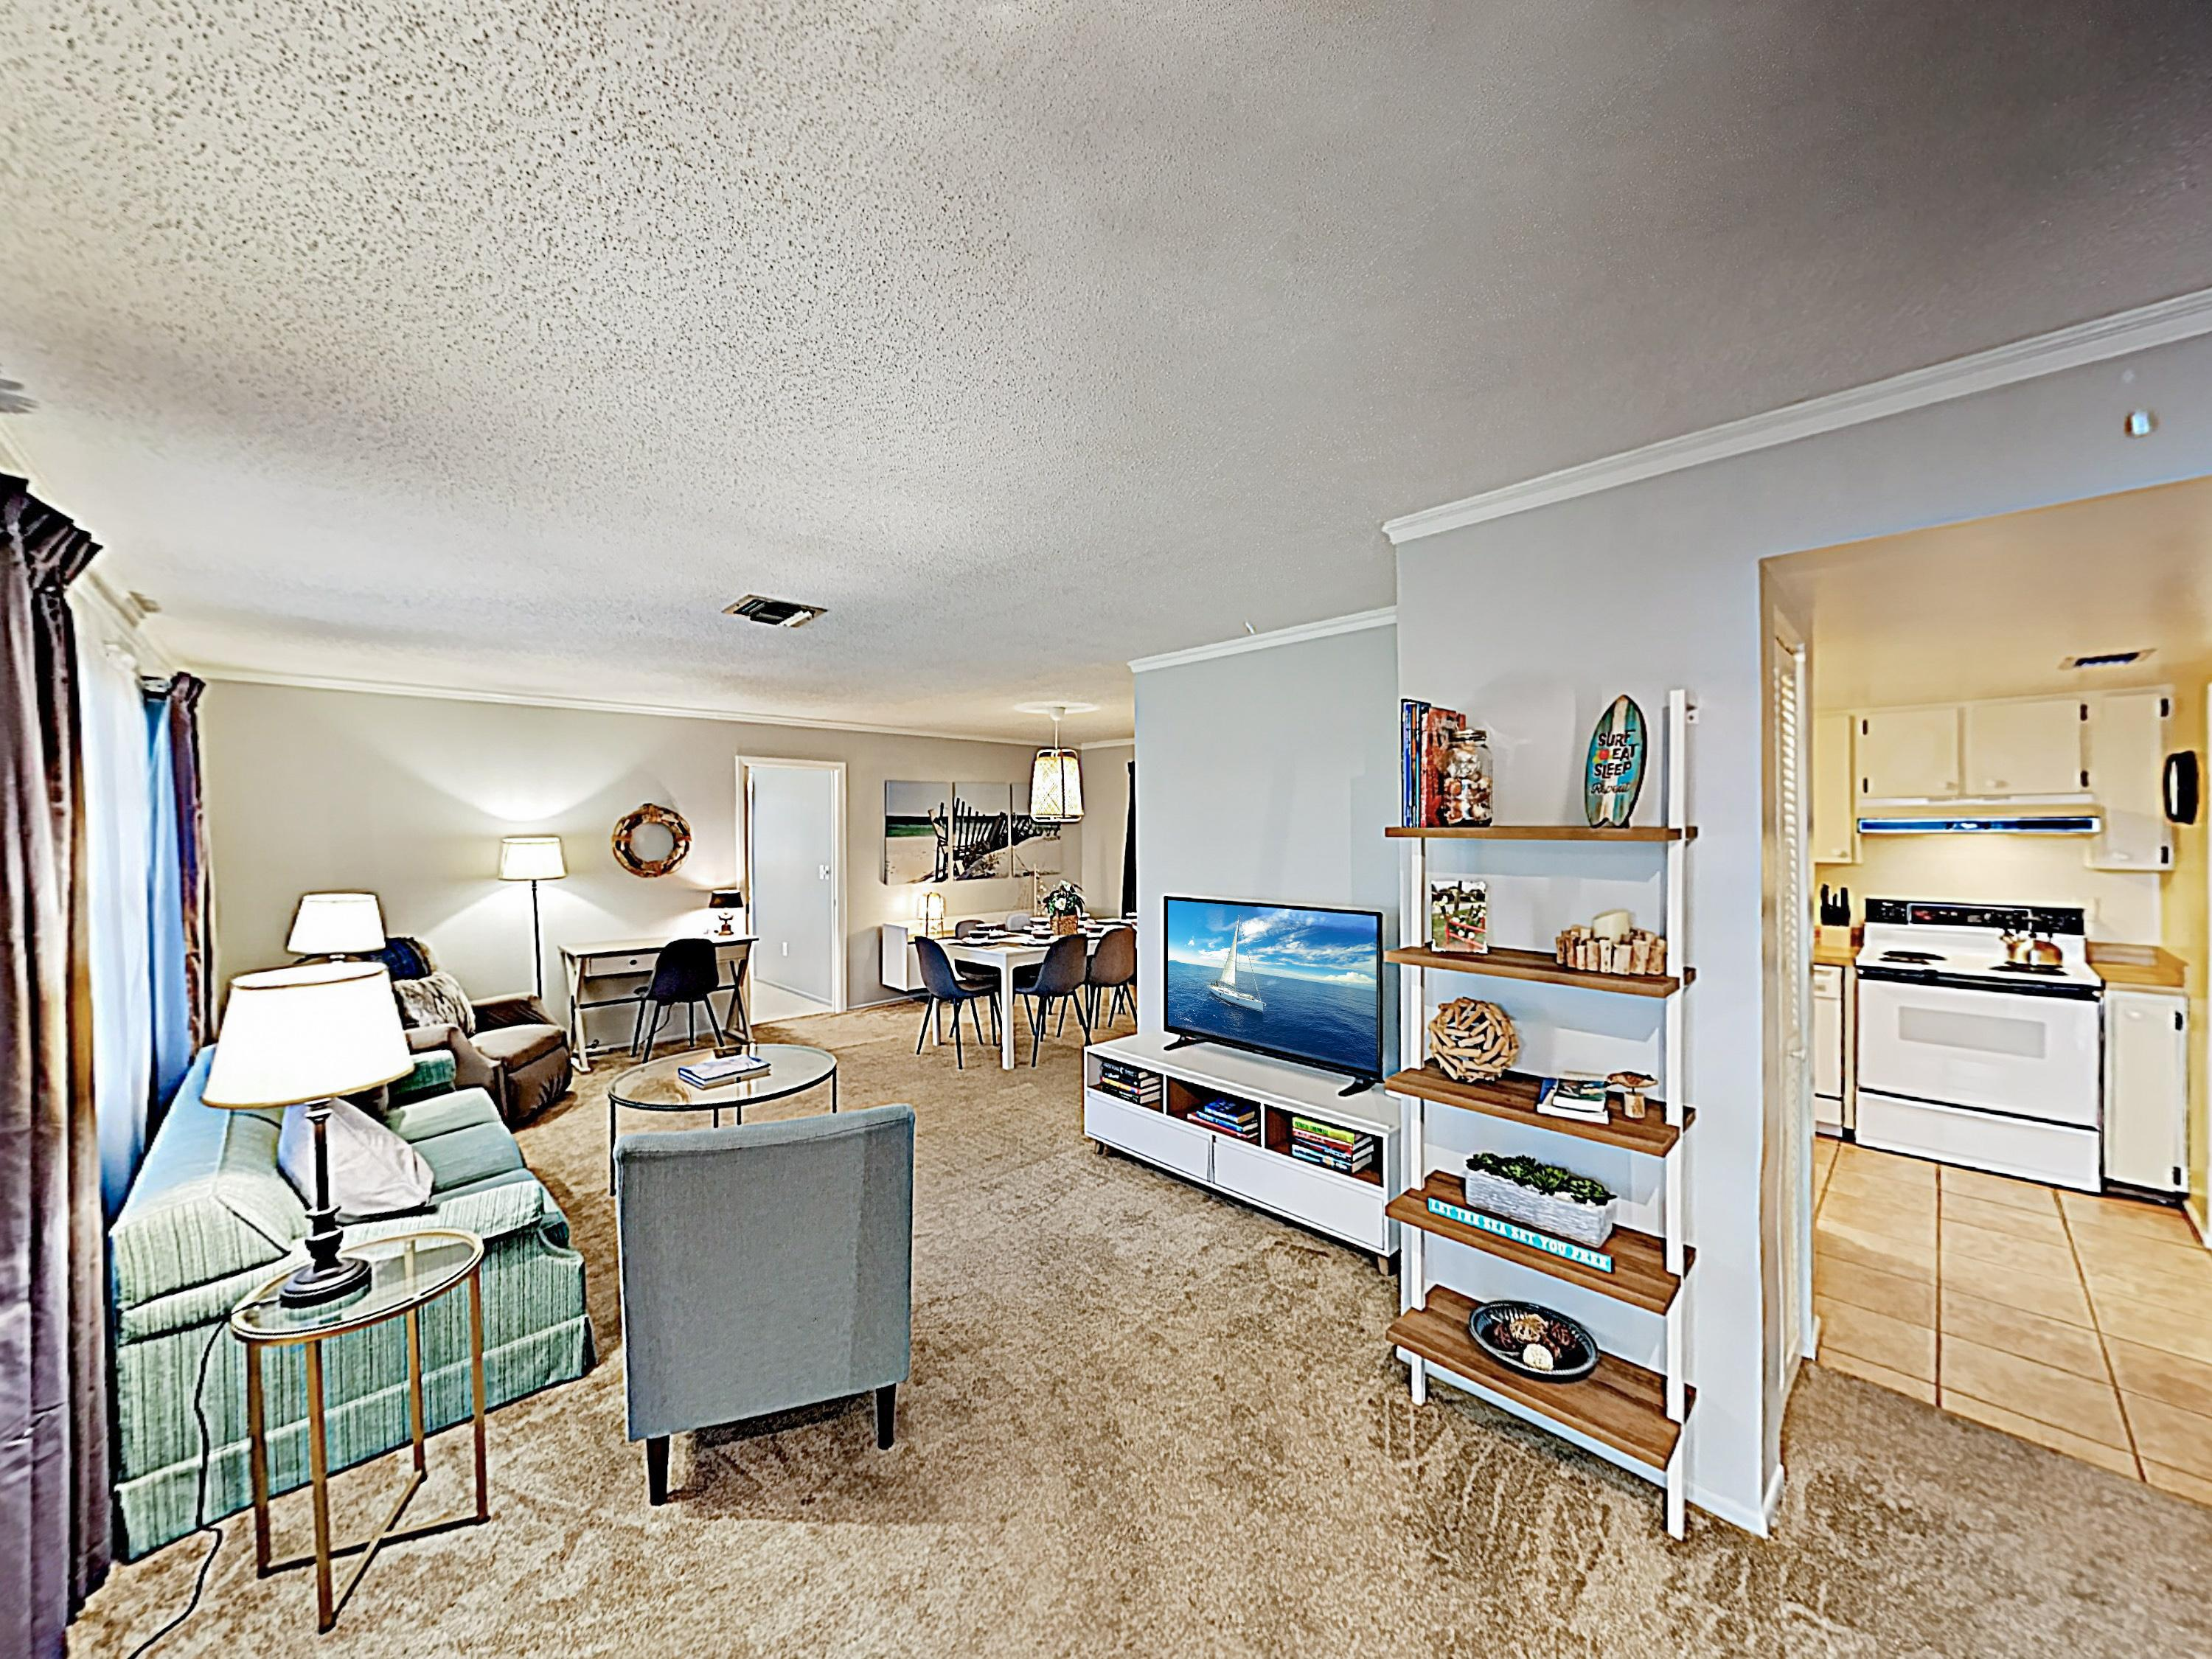 Welcome to Sarasota! This home is professionally managed by TurnKey Vacation Rentals.